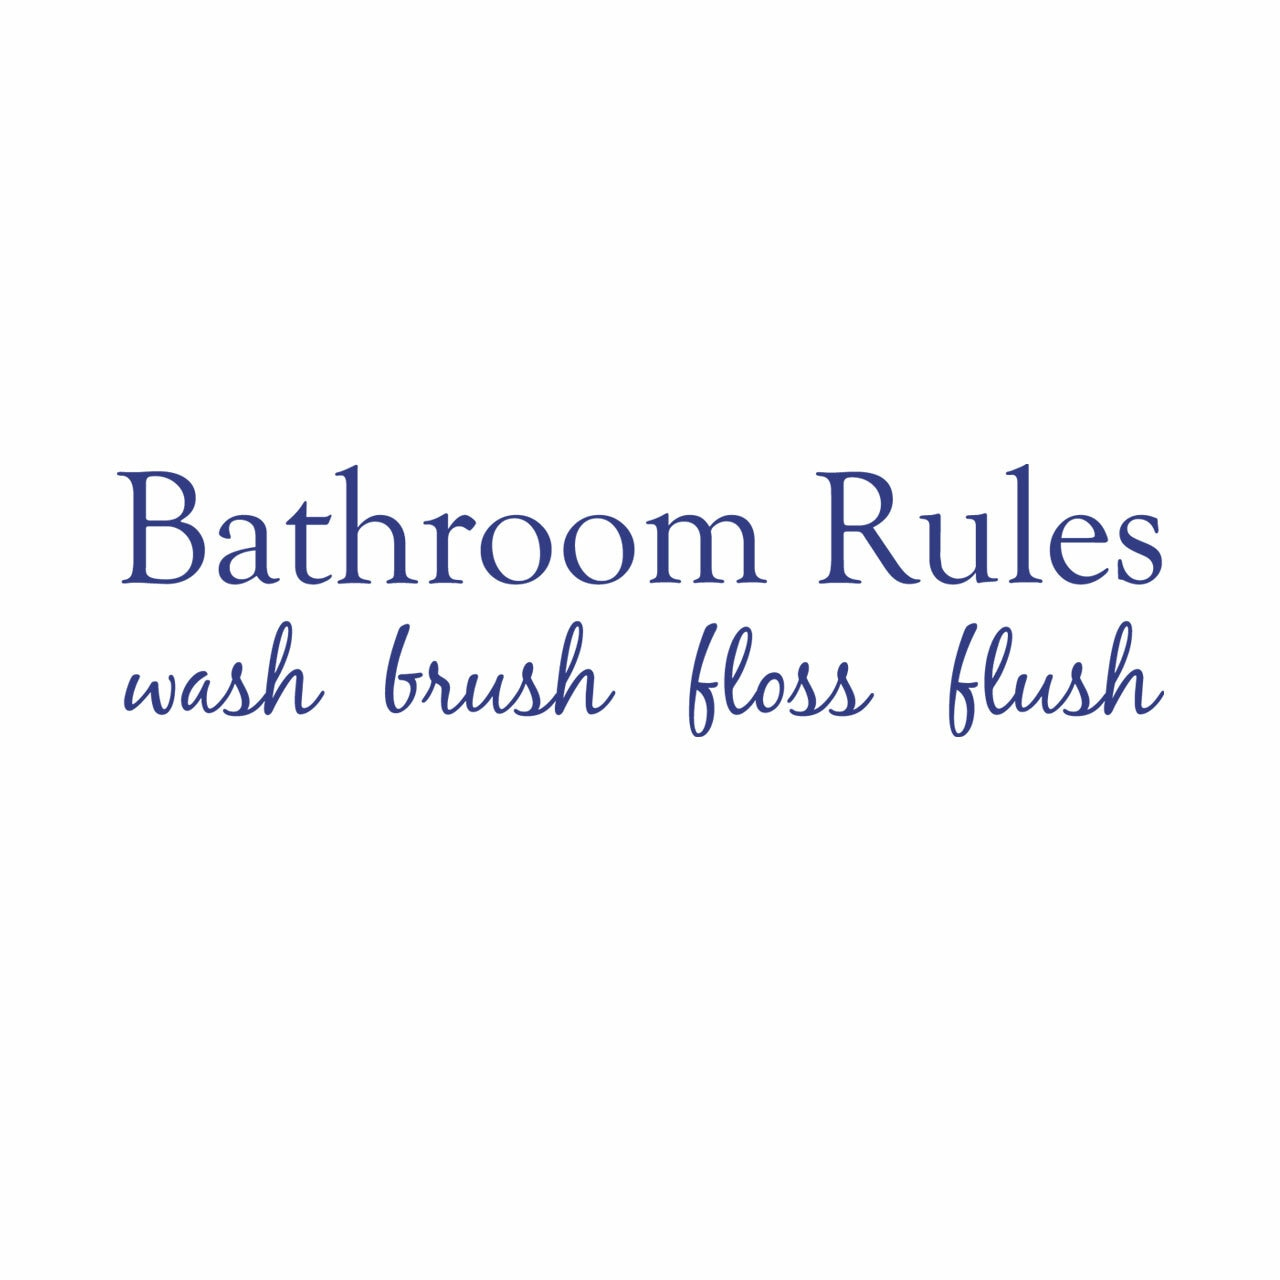 Bathroom rules wash brush floss flush written in a navy color on a white background